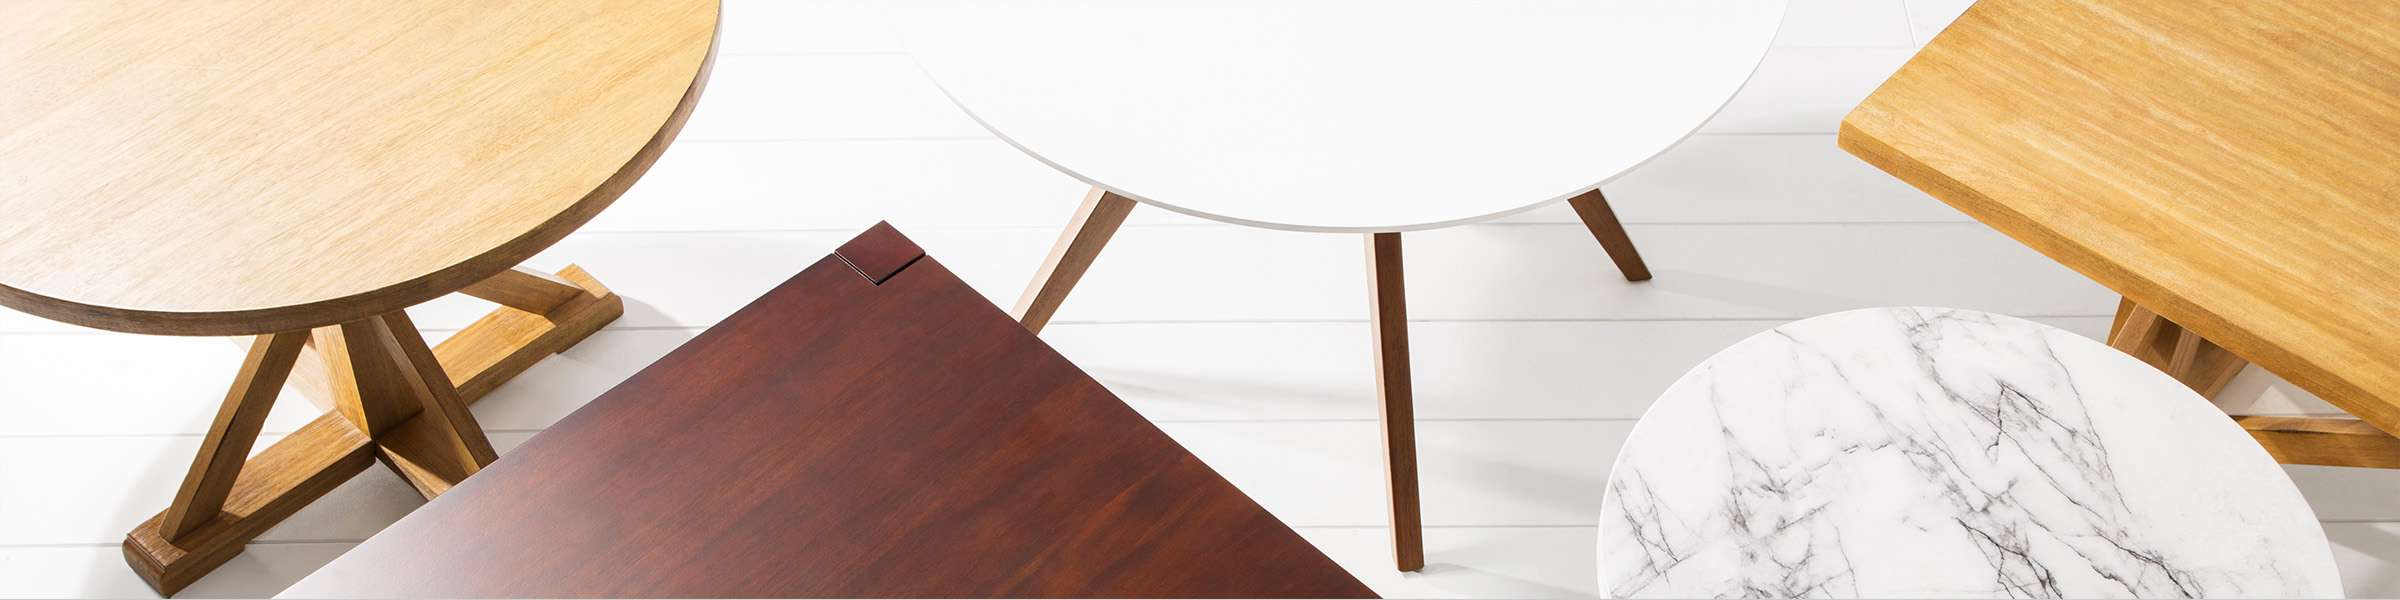 dining tables - Round Wood Dining Table With Leaf